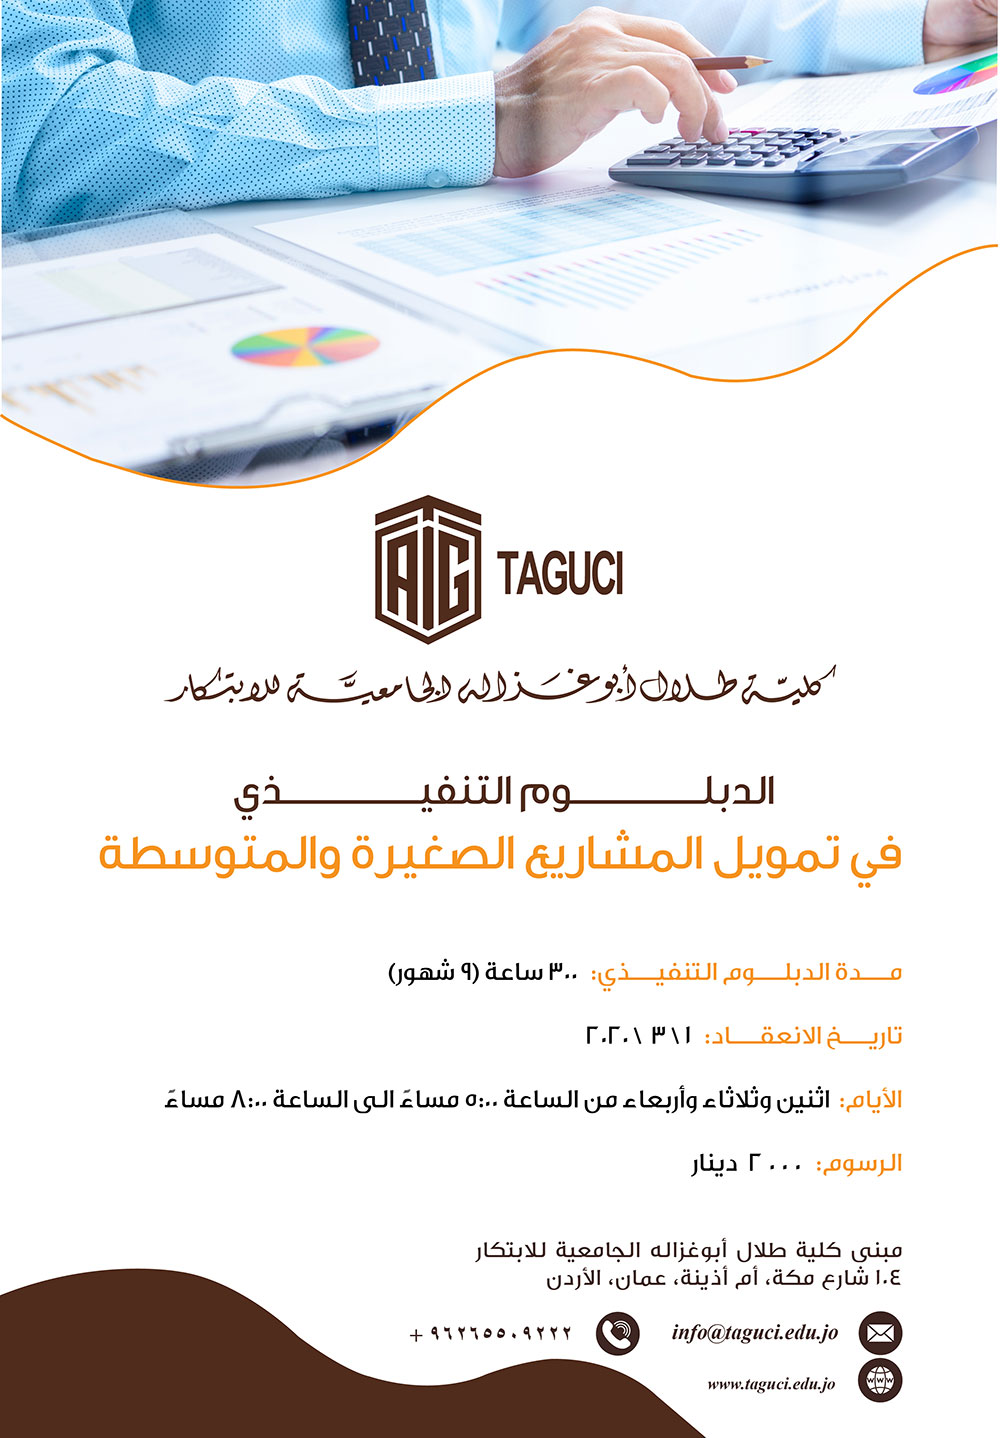 'Abu-Ghazaleh University College for Innovation' Launches Executive Diploma in 'Project Finance'